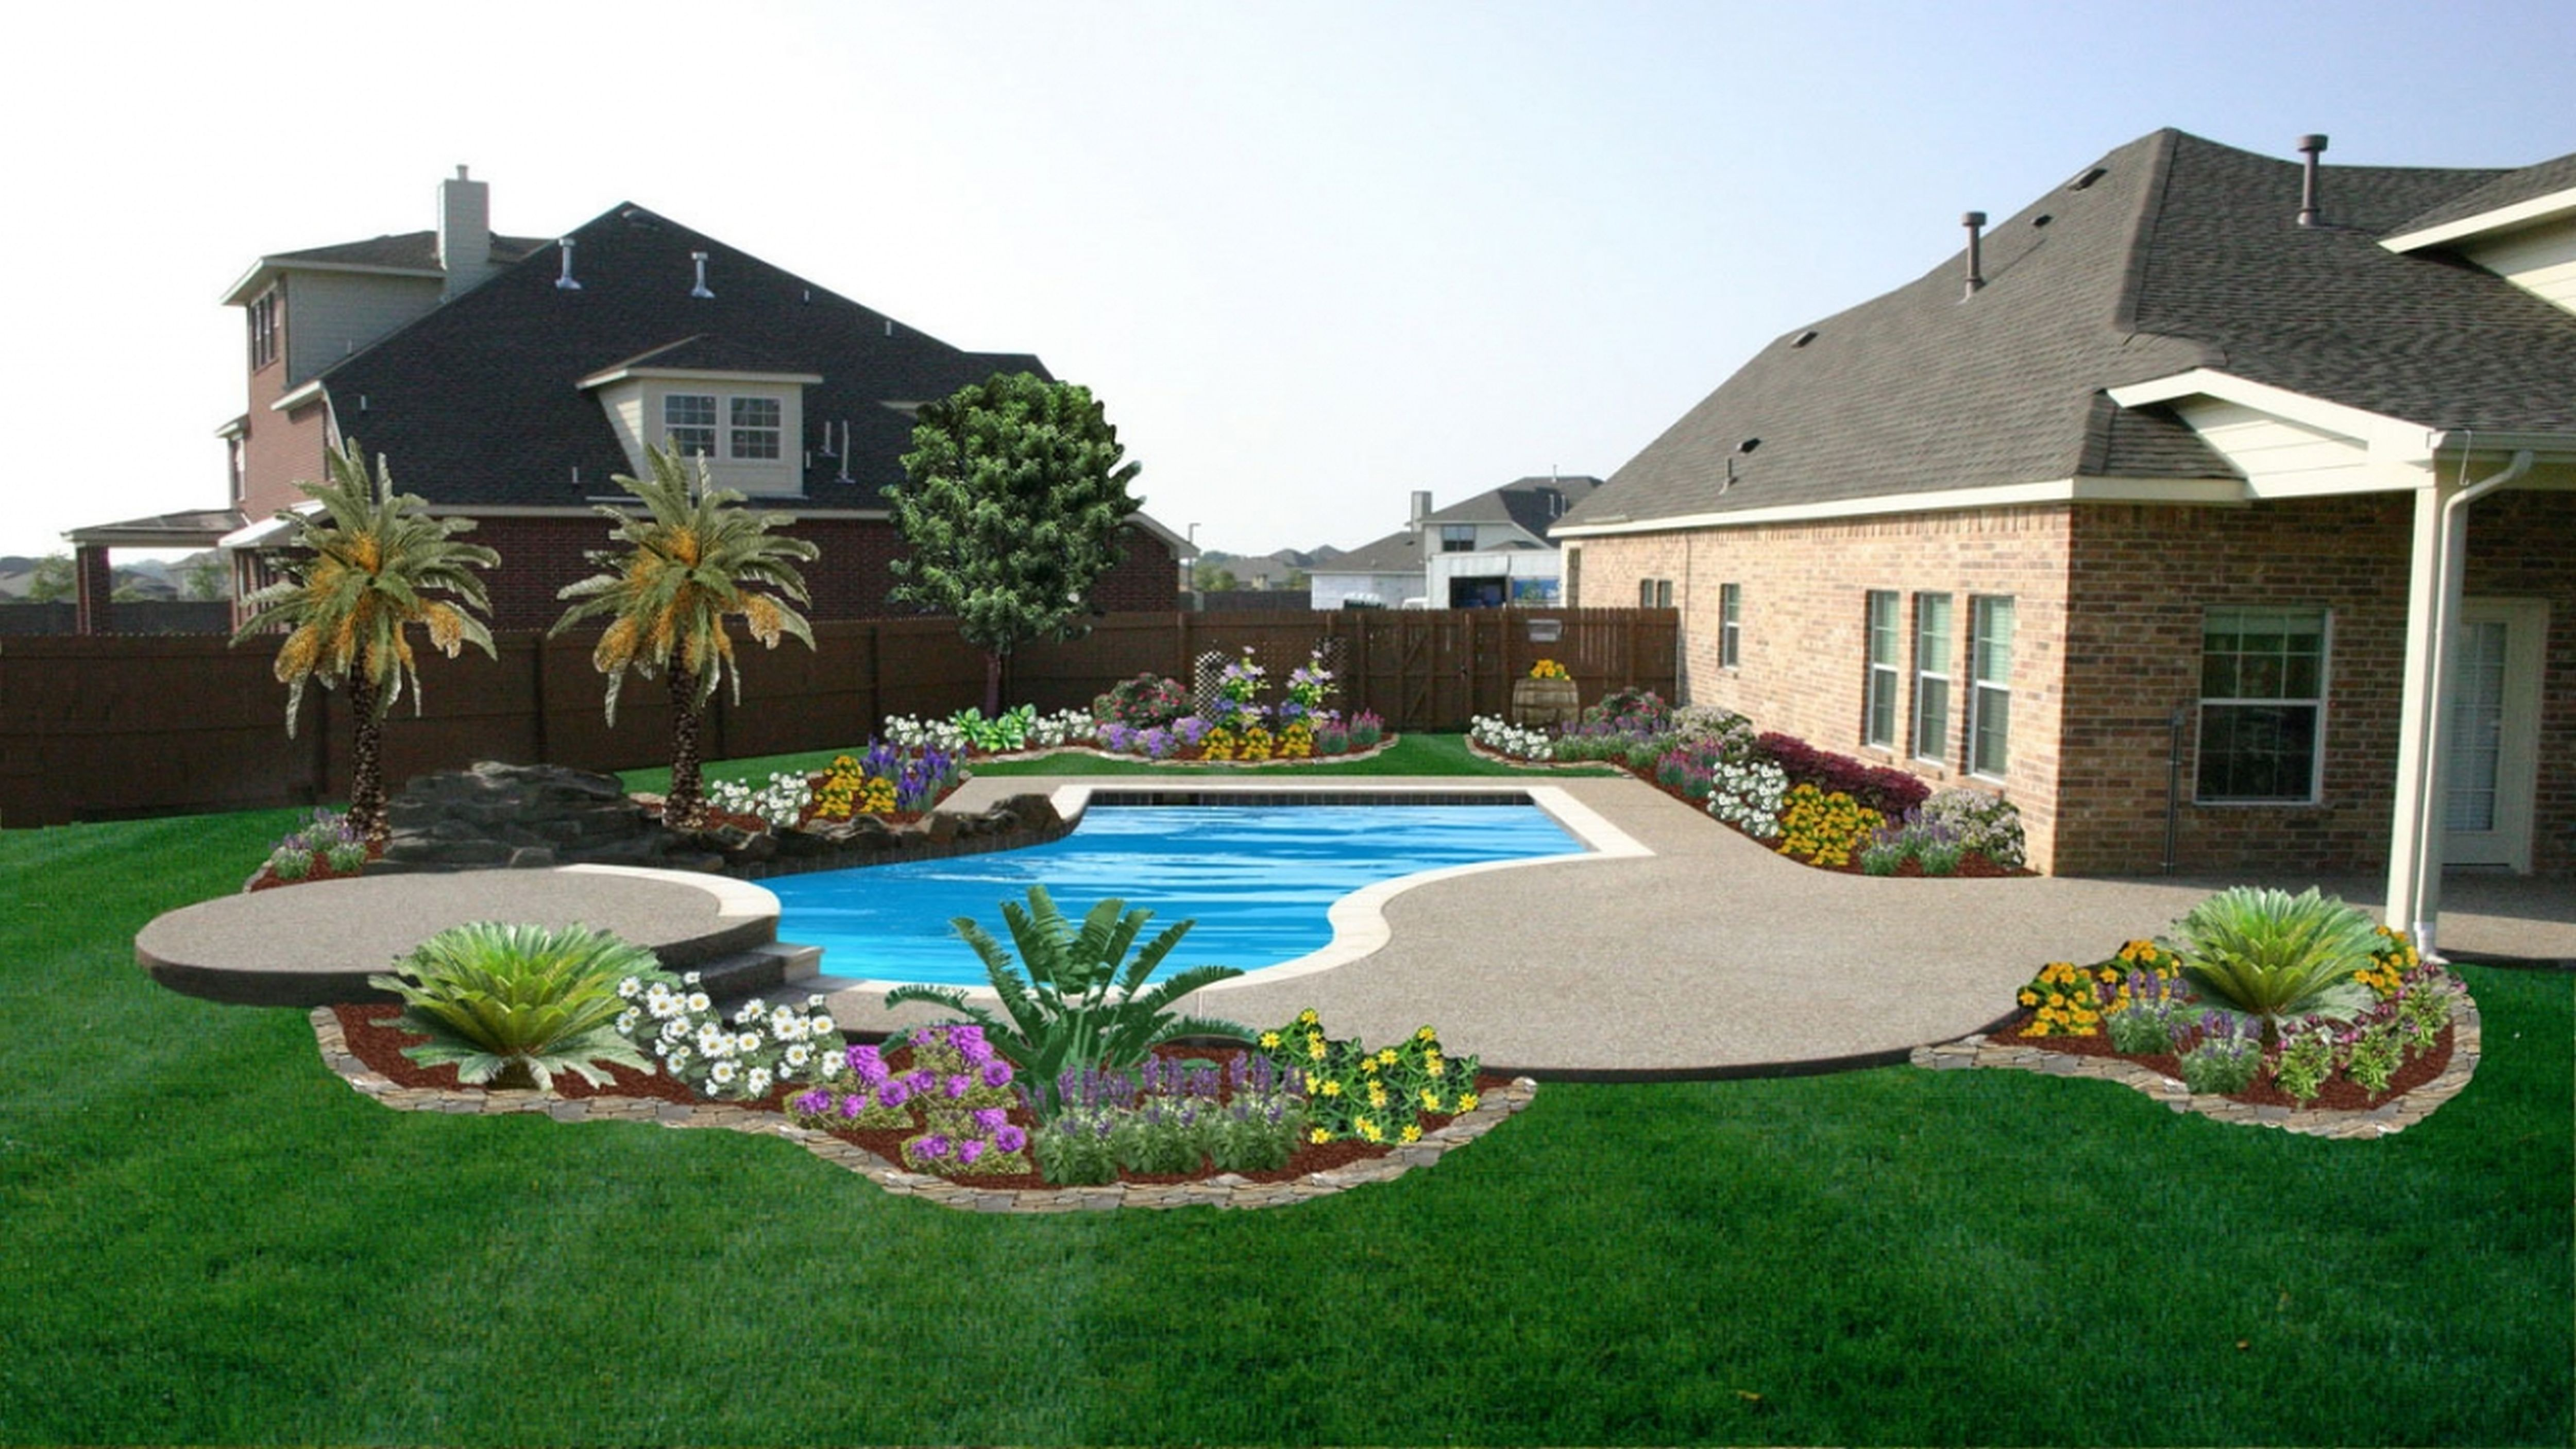 Pool Landscaping Ideas Landscaping Around Pool Pool Landscaping